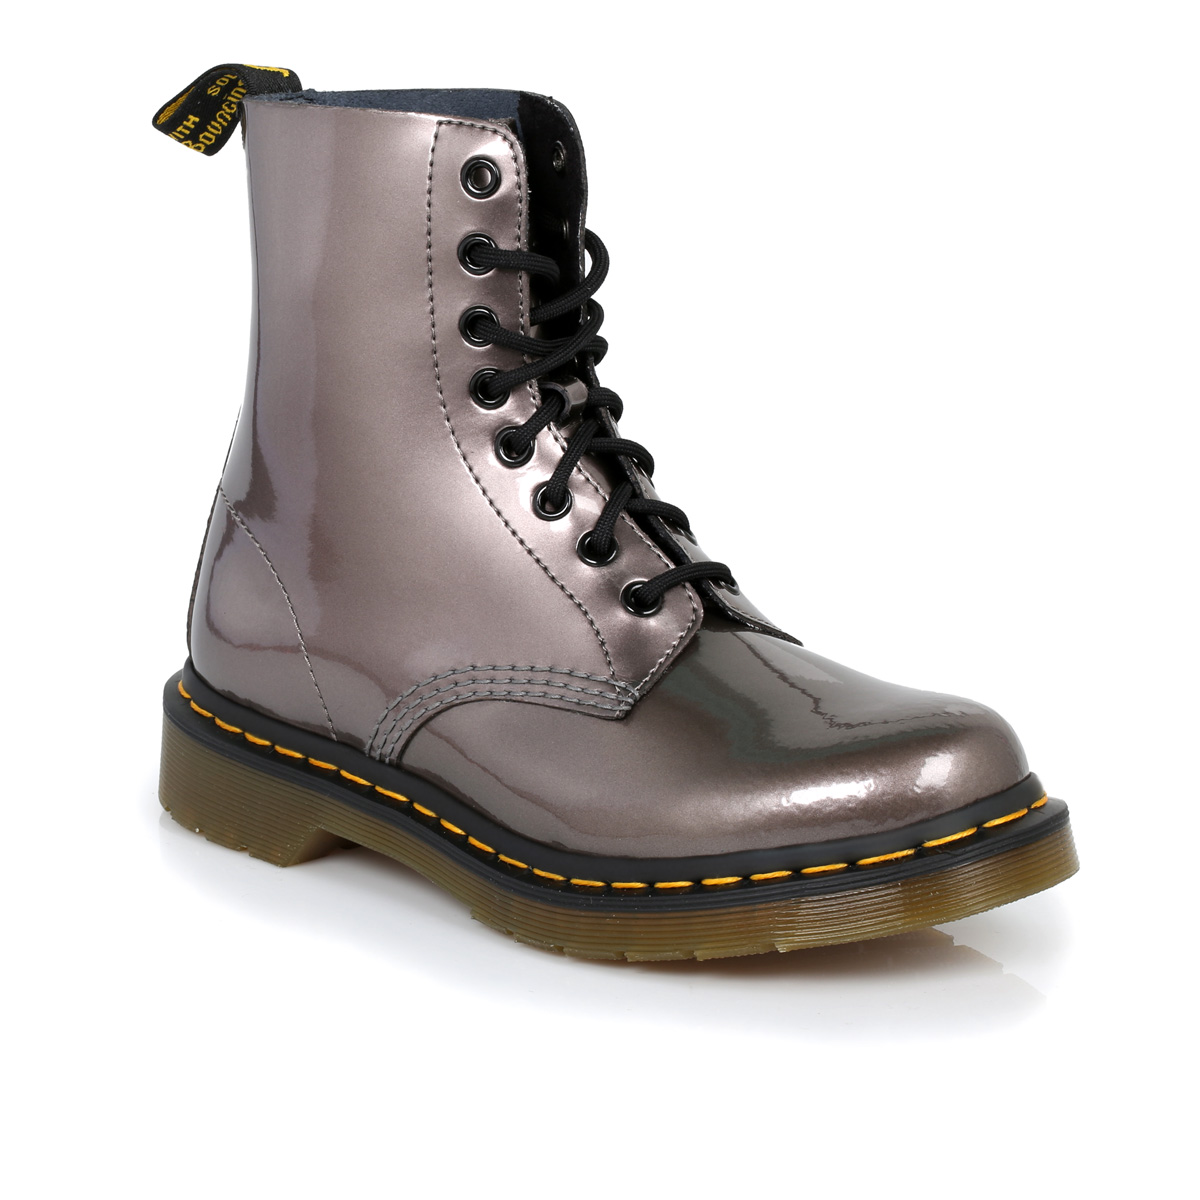 dr martens metallic pewter pascal leather boots sizes 3 9 ebay. Black Bedroom Furniture Sets. Home Design Ideas